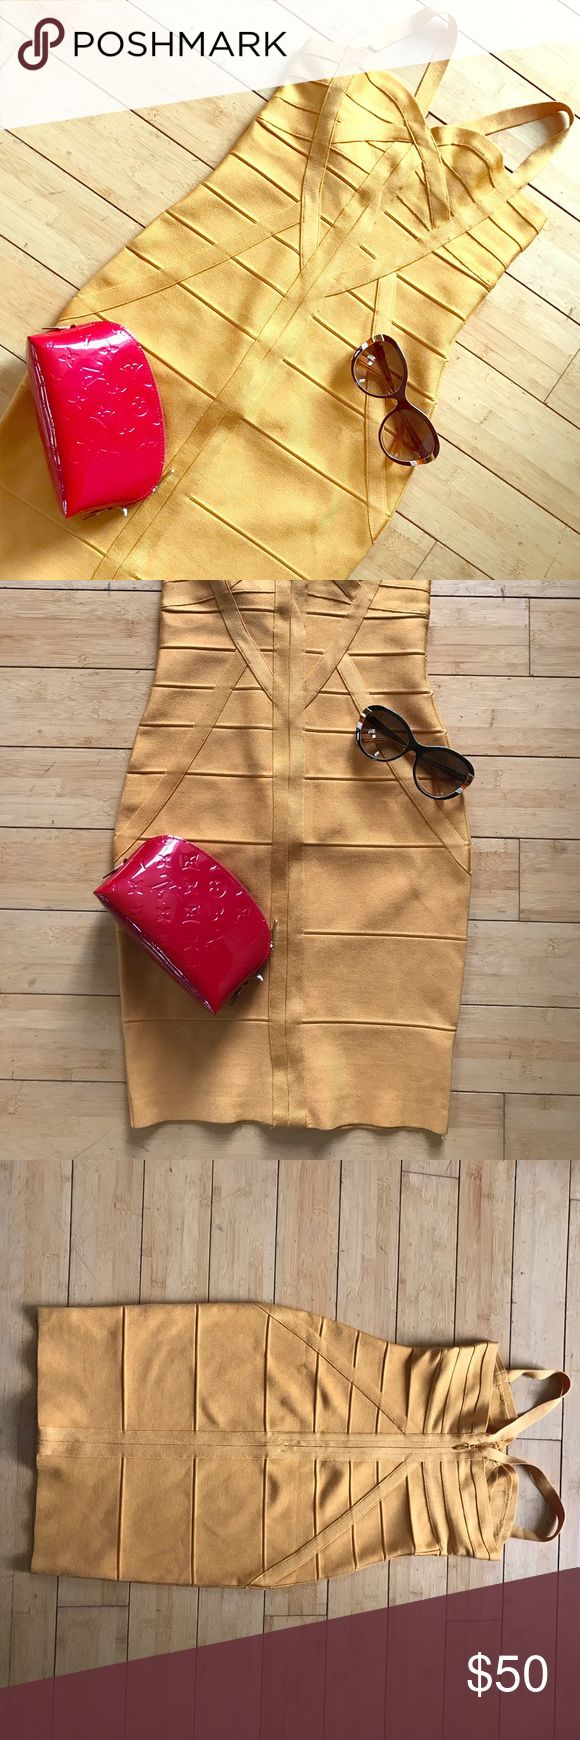 💋Sexy Gold Bandage Dress size XS/S Sexy gold bandage dress no labrl, looks and feels just like Herve Lager! Size Small or Extra Small, low cut like new! Dresses Mini